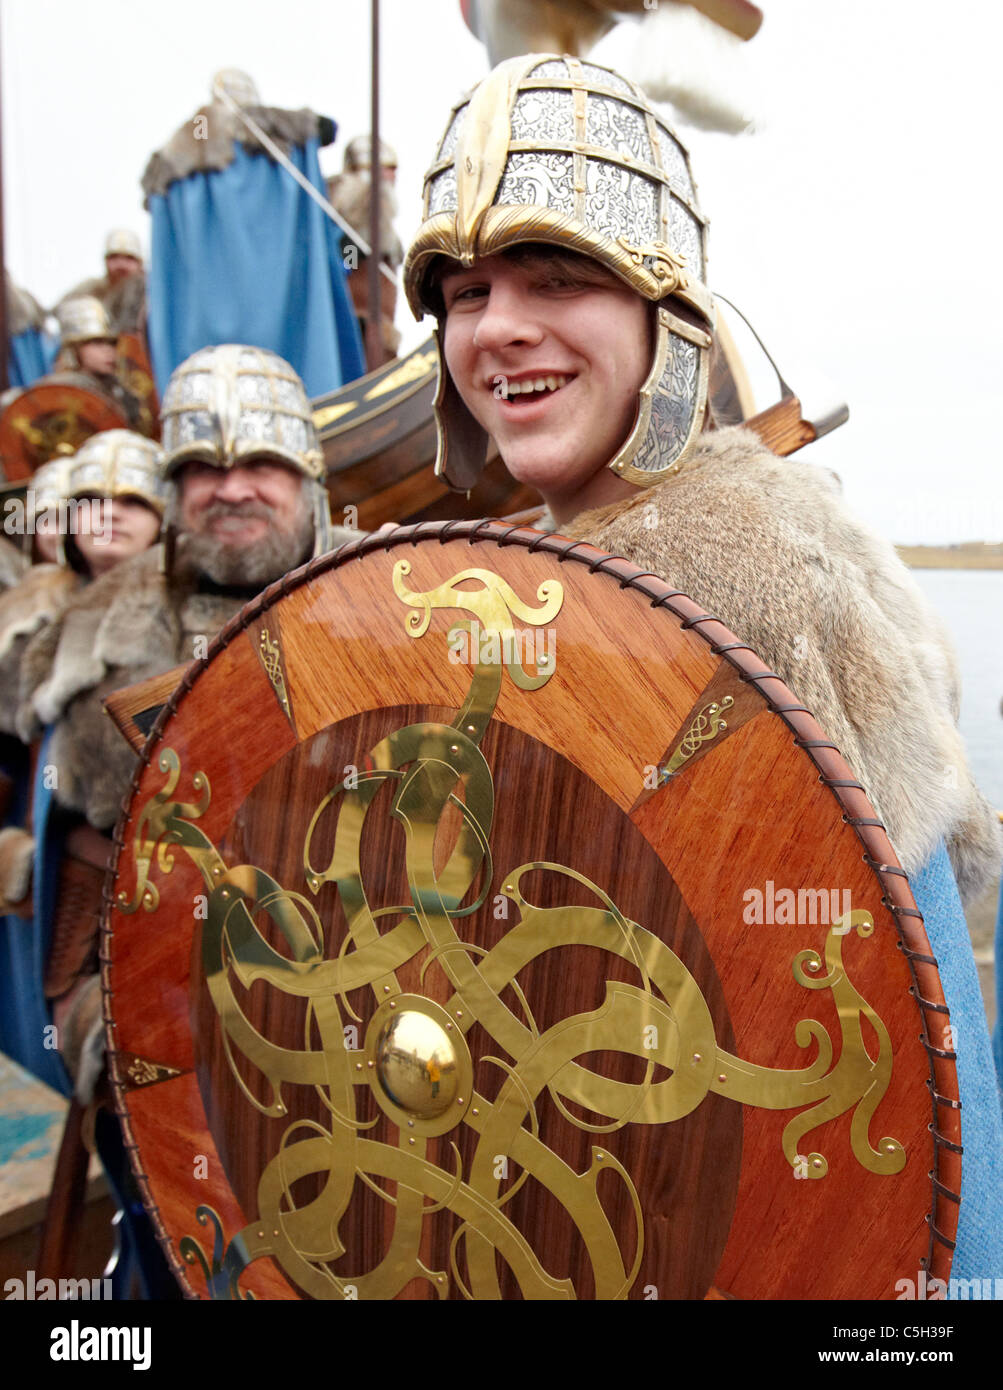 Vikings at the Up Helly Aa Fire Festival Shetland Islands Stock Photo